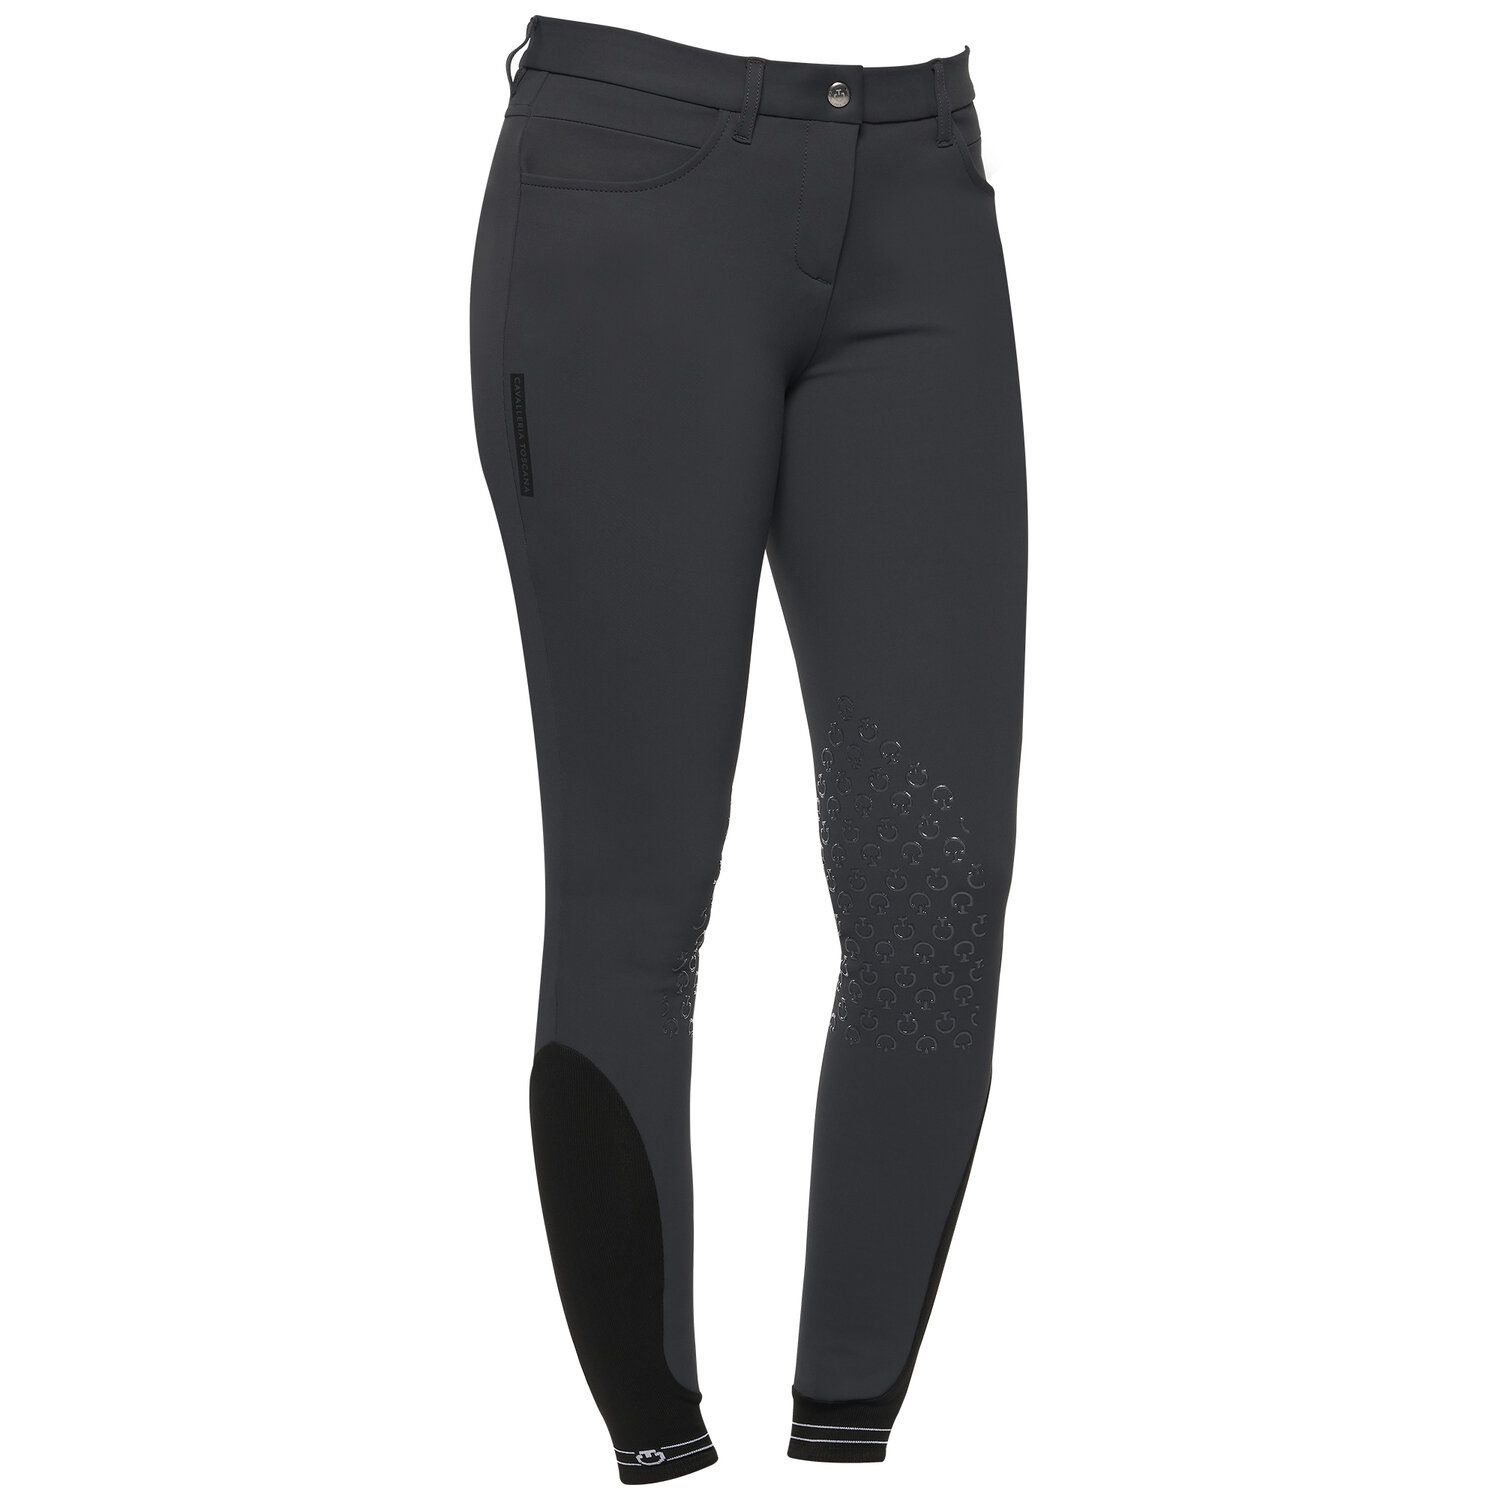 Women's knee grip breeches with perforated logo tape